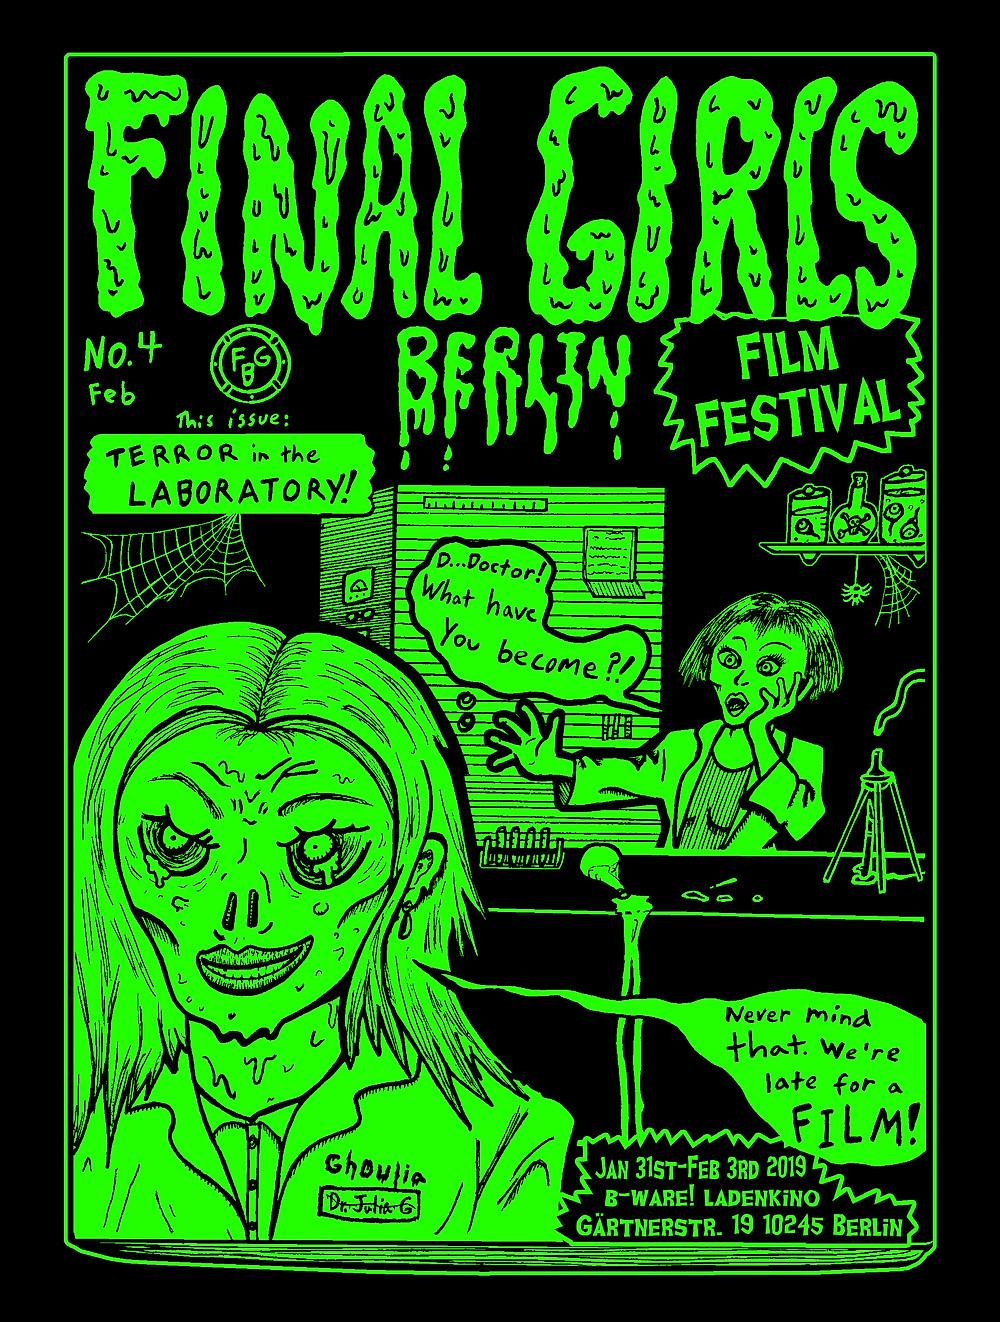 Final Girls Berlin Film Festival Poster 2019